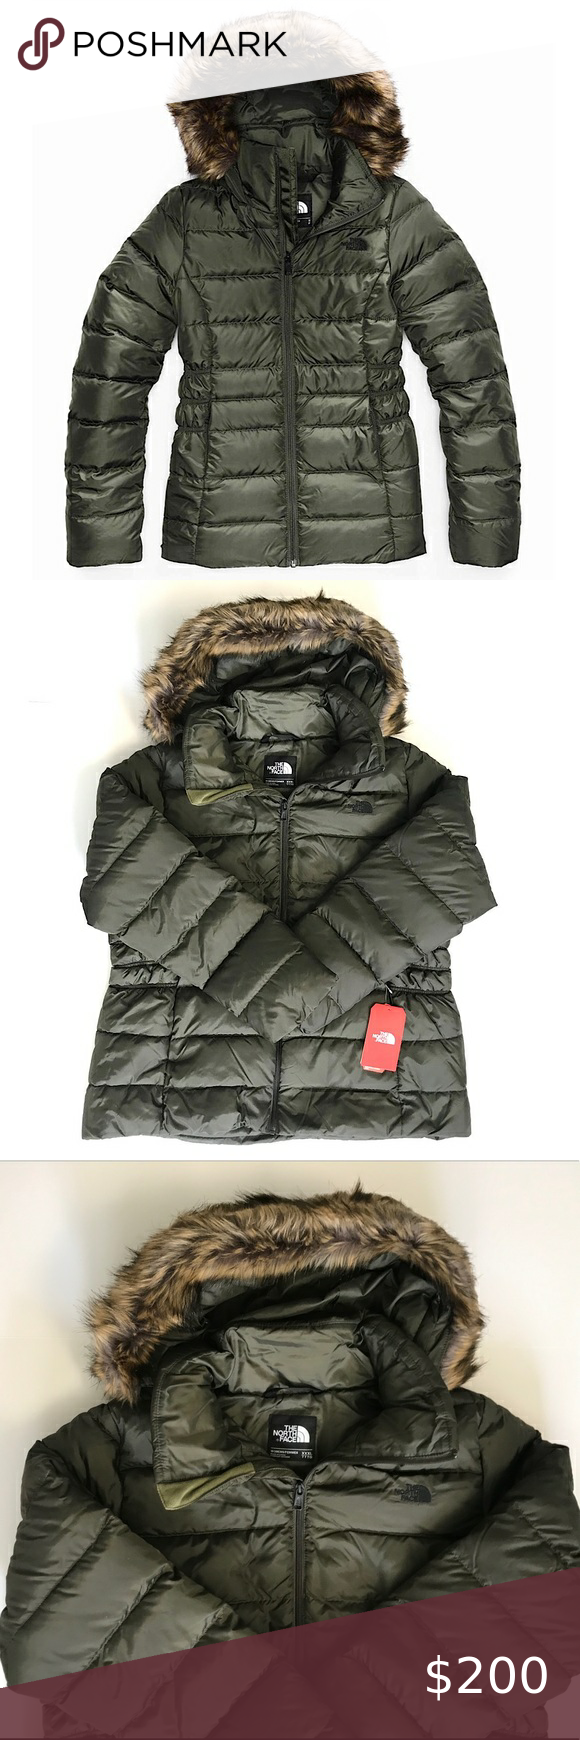 Nwt The North Face Jacket Puffer Size 3x Xxl Long North Face Jacket North Face Jacket Womens Winter Jacket North Face [ 1740 x 580 Pixel ]